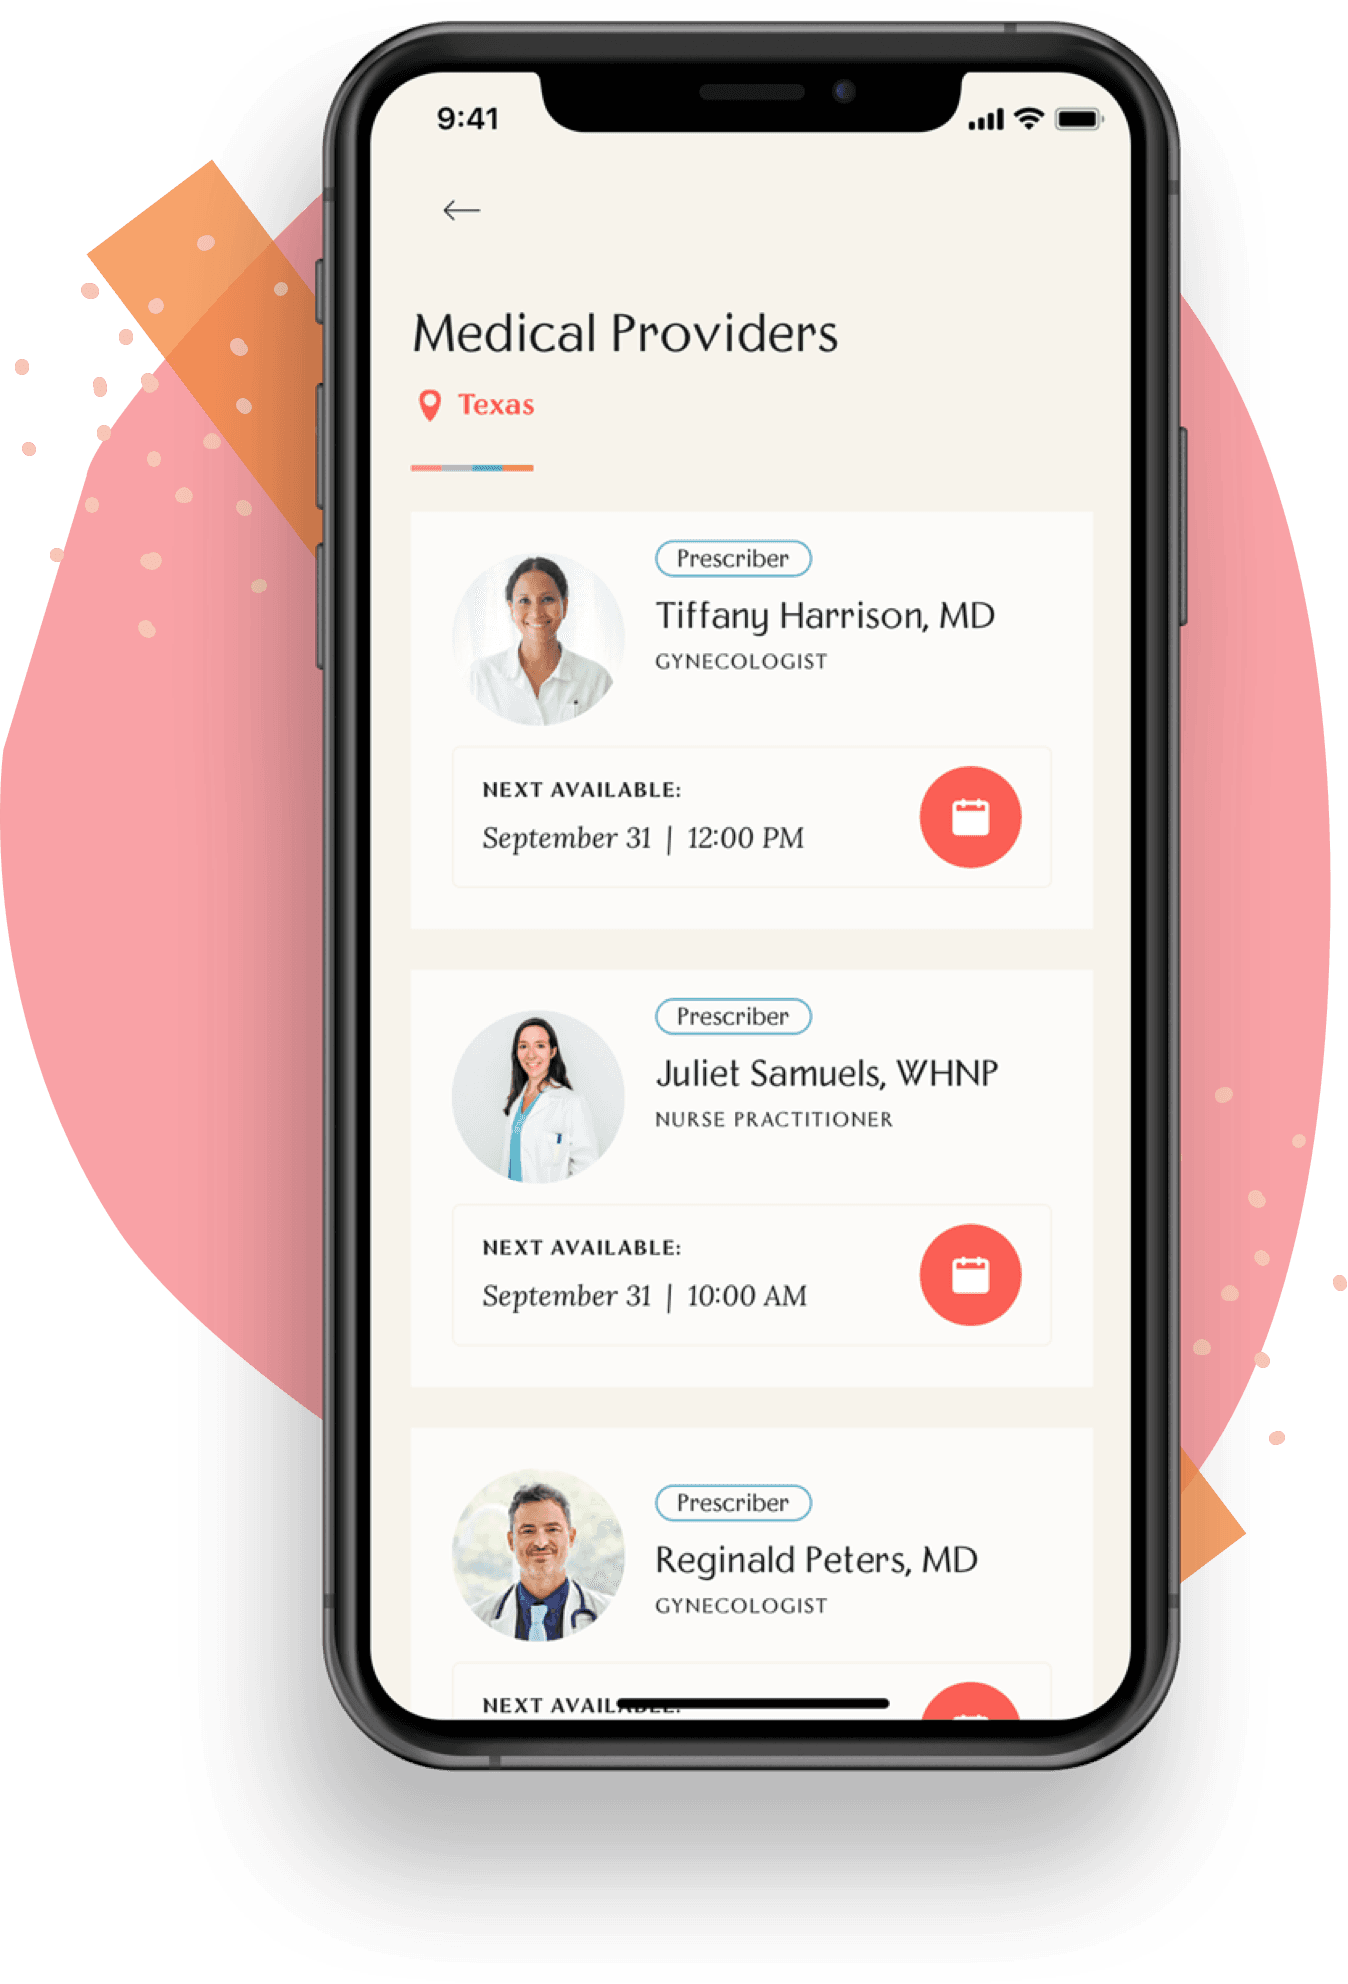 About telehealth medical providers